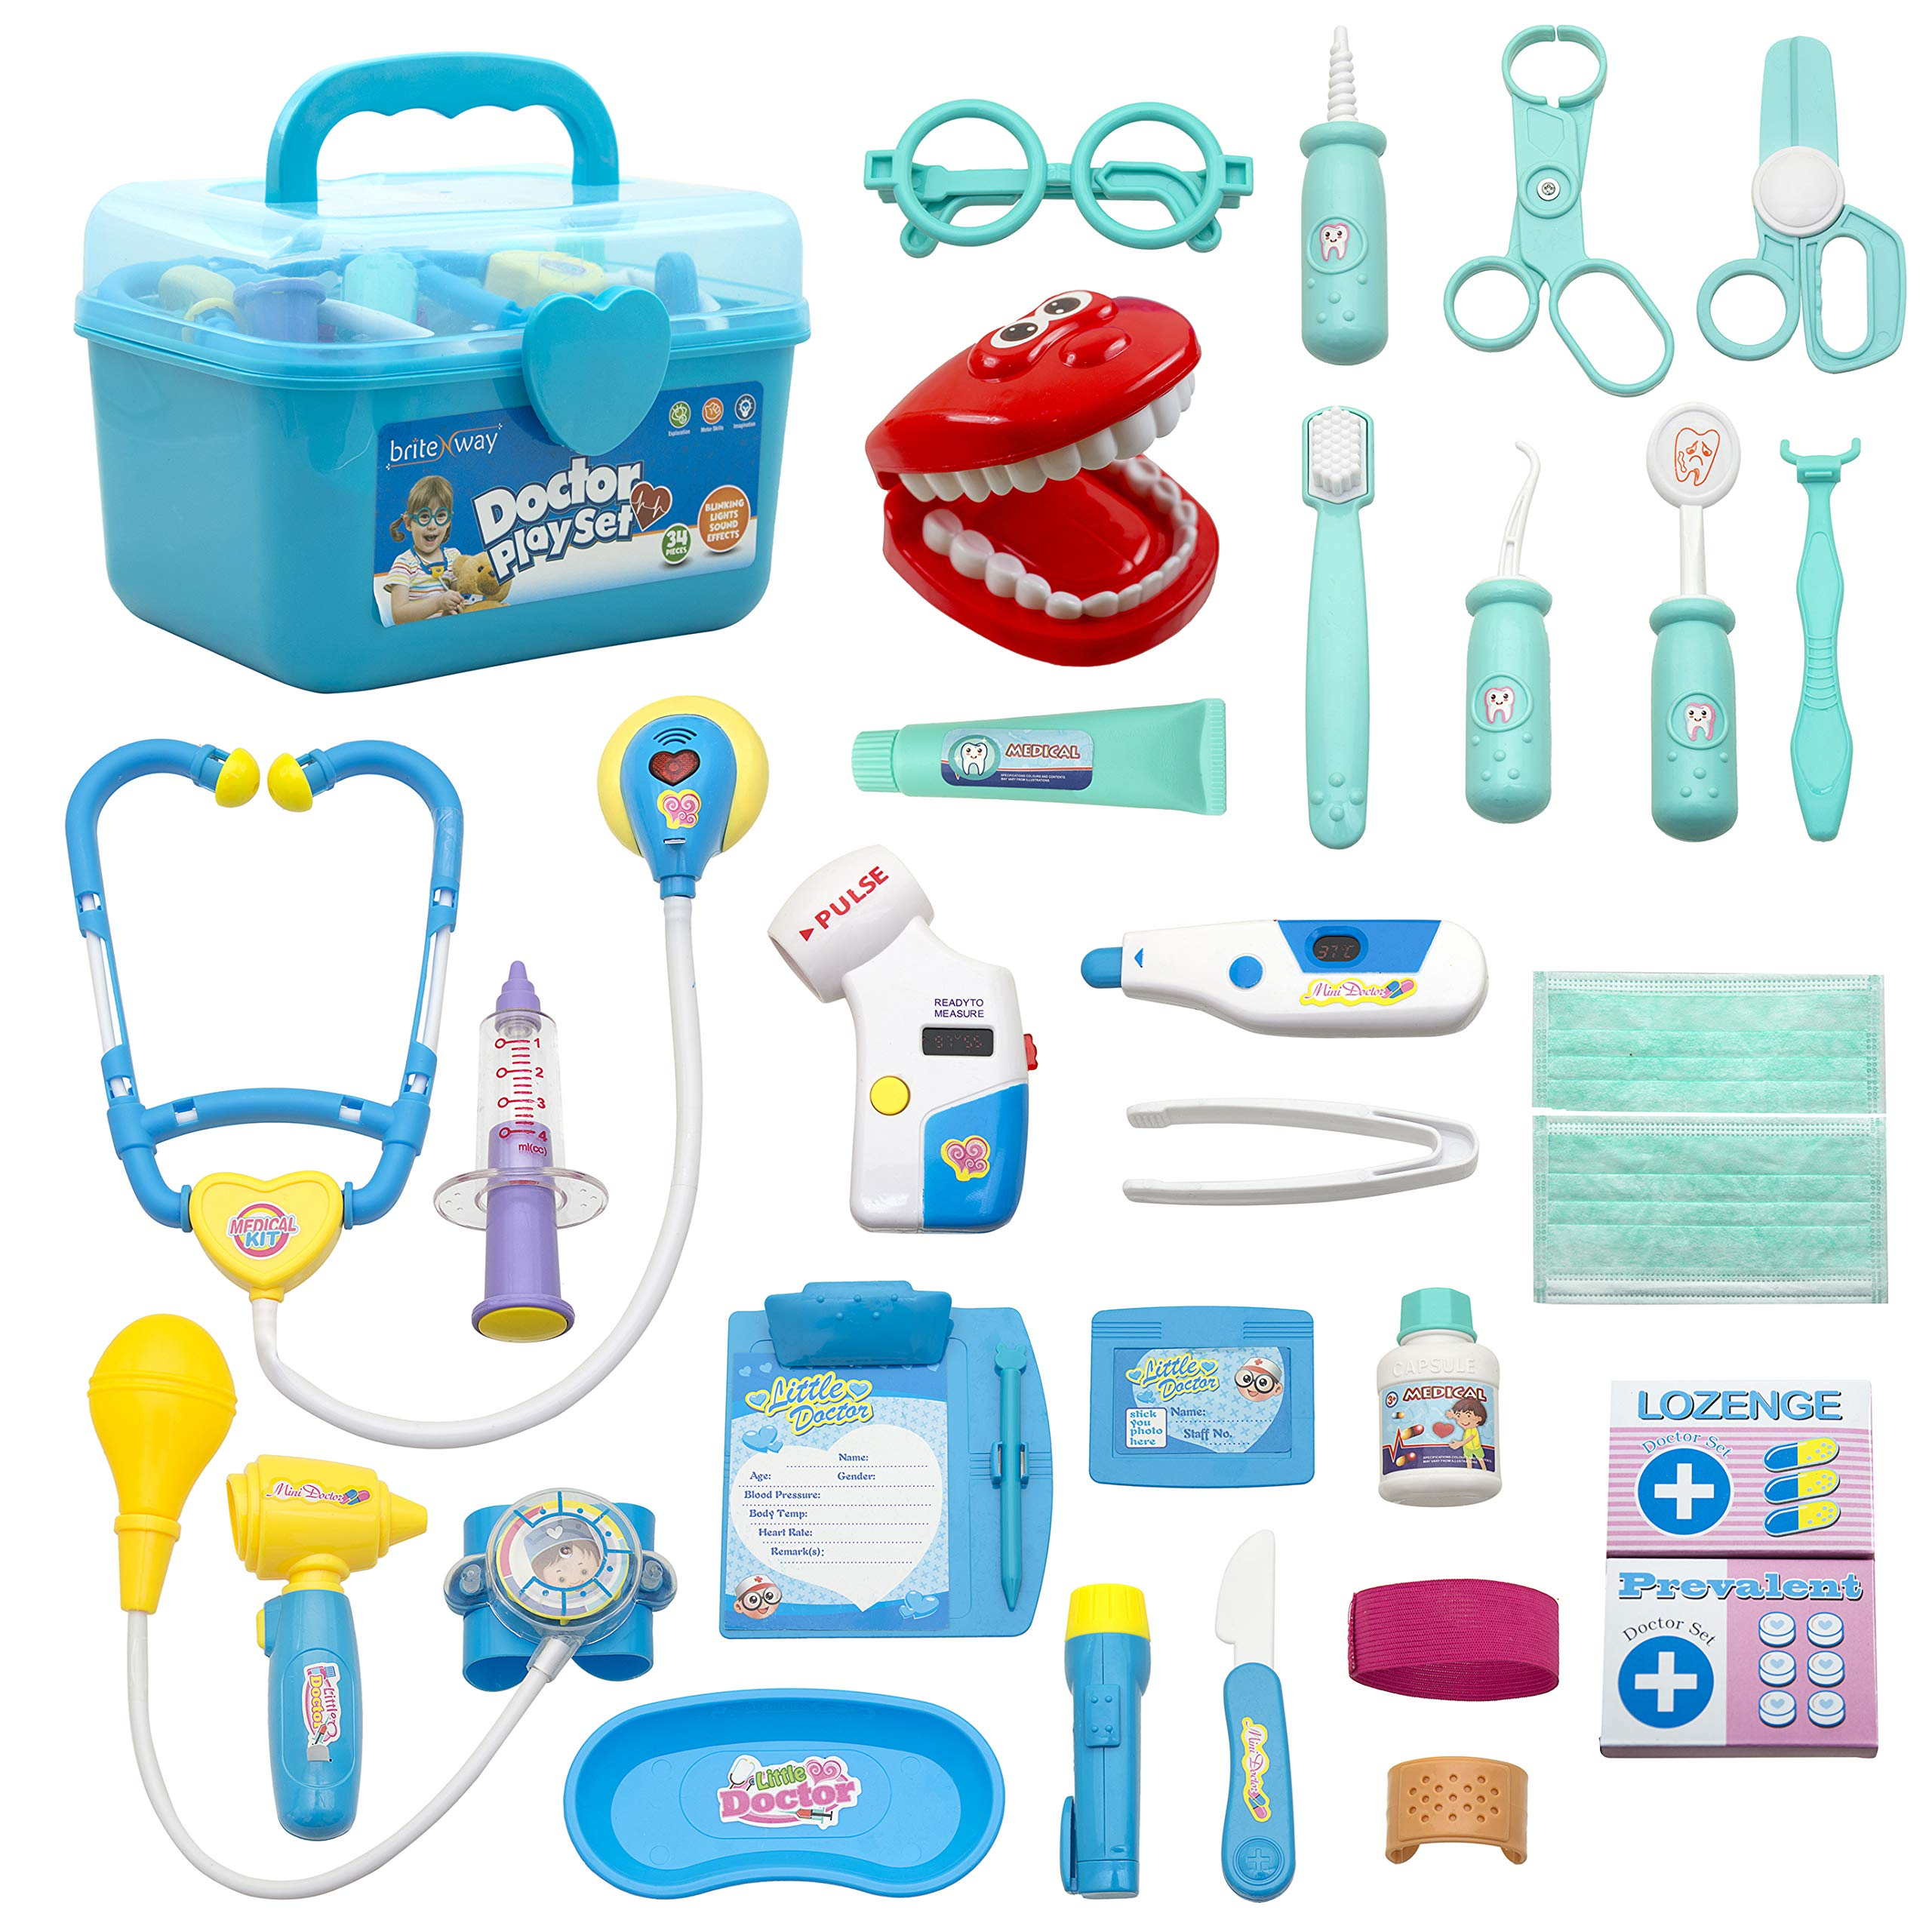 BRITENWAY Educational Doctor Medical Pretend Play Toy Set in Storage Box 34 Pcs - Battery Operated Tools with Lights & Sounds - Promote Learning, Hand to Eye Coordination, Fine Motor Skills by BRITENWAY (Image #9)